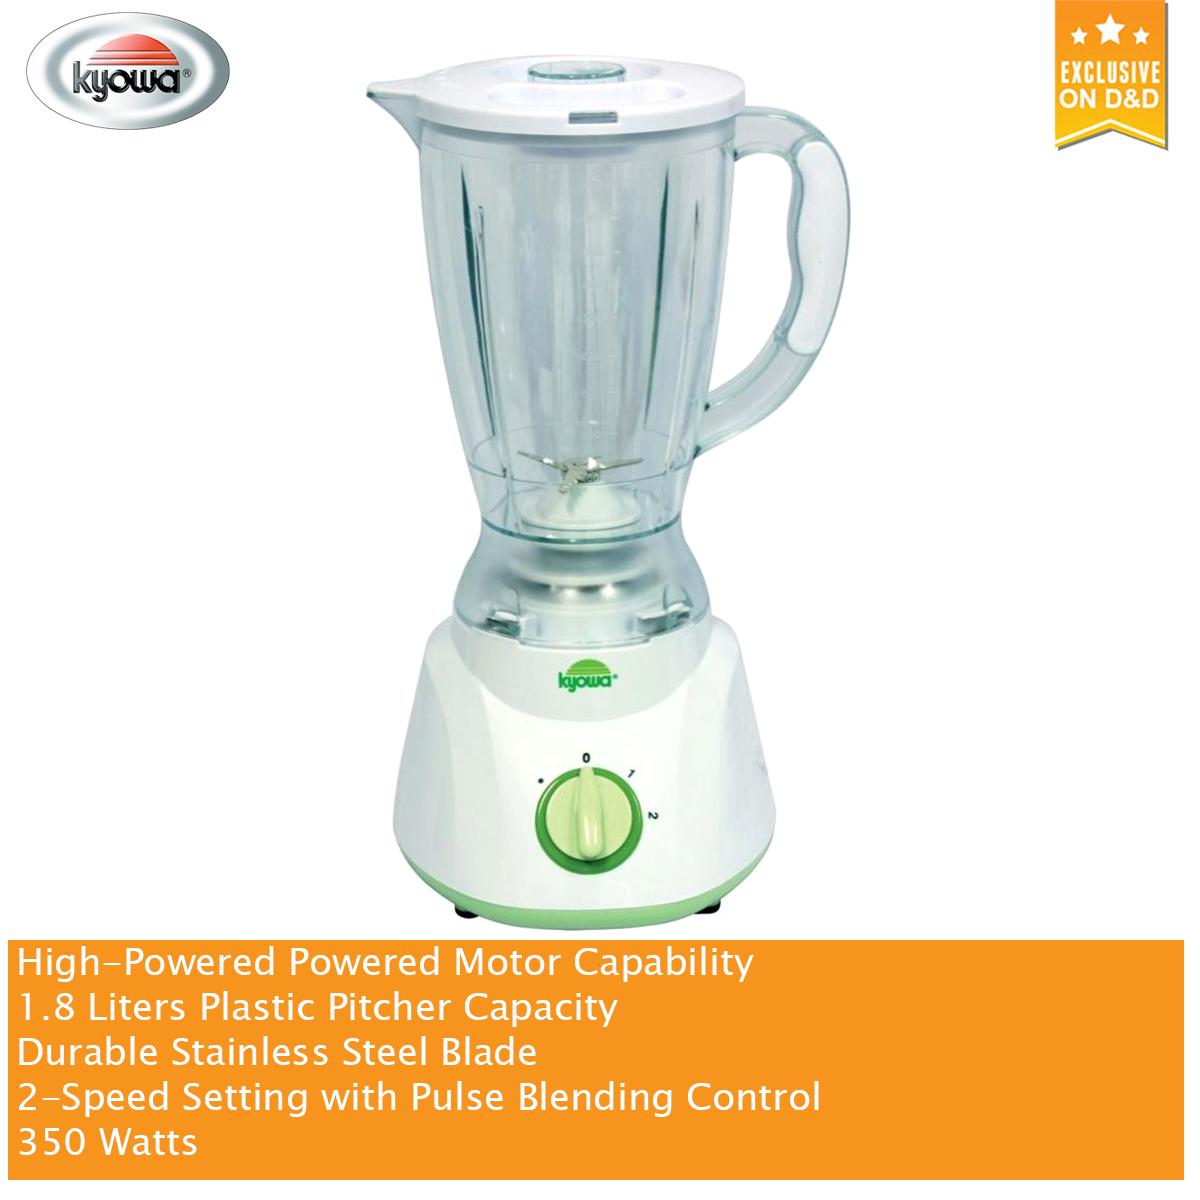 Kyowa Philippines -Kyowa Blender for sale - prices & reviews | Lazada